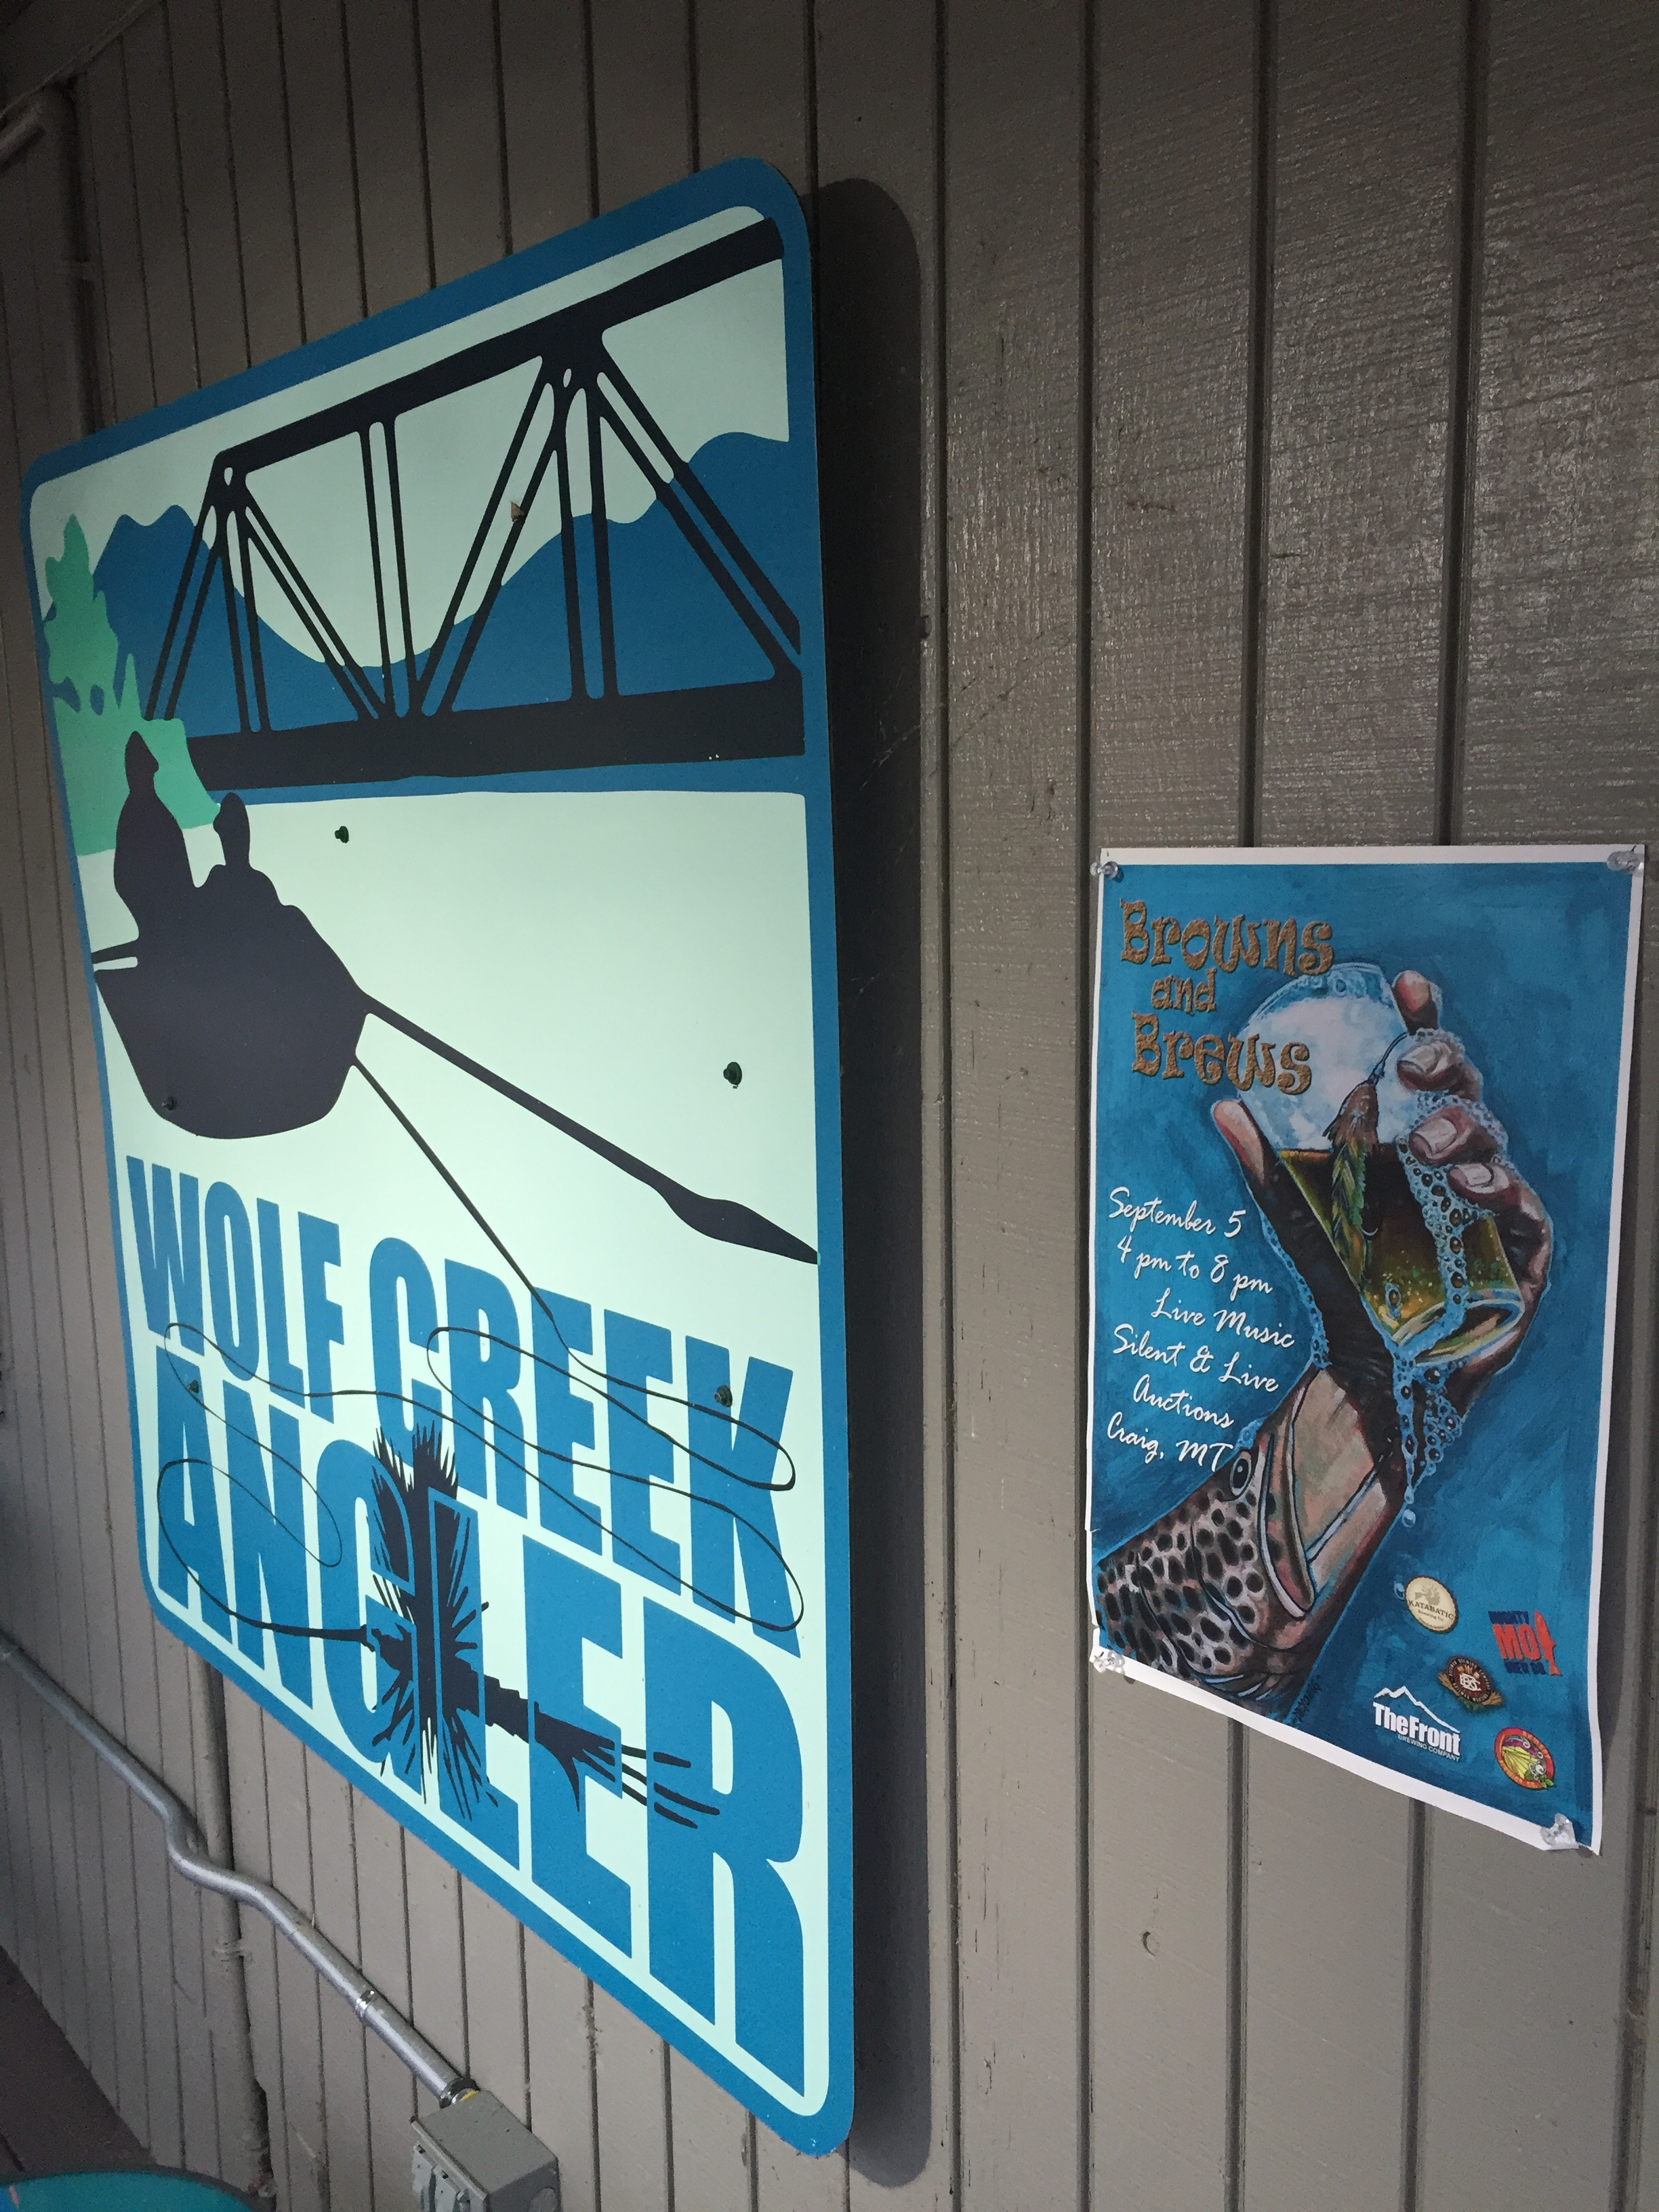 Spend your Labor Day Weekend at Wolf Creek Angler